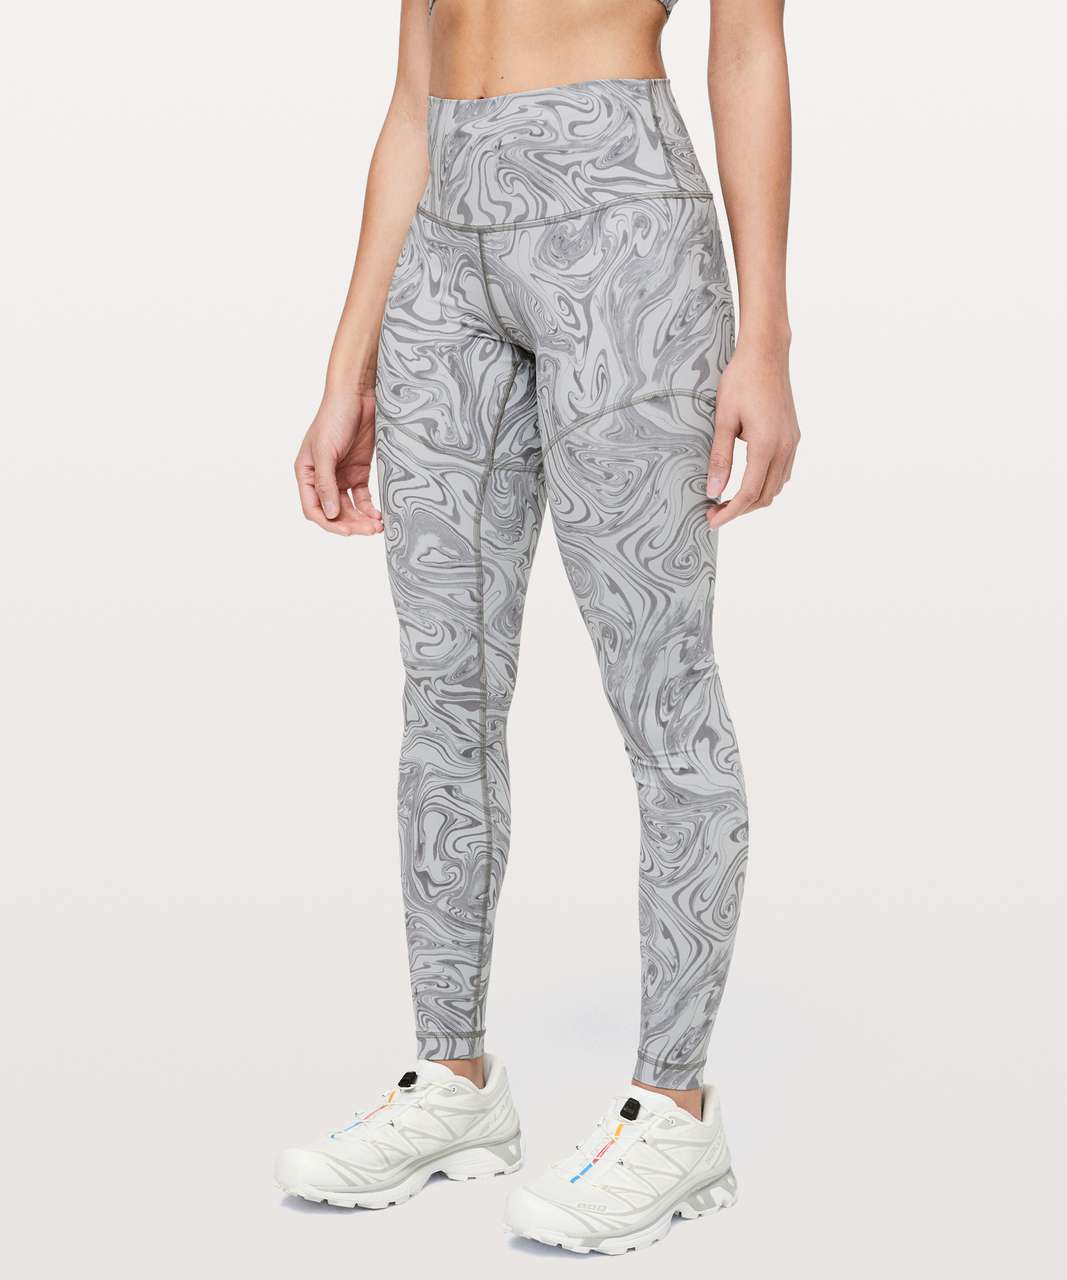 Lululemon Wunder Under High-Rise Tight Suminagashi *lululemon lab - Ice Grey